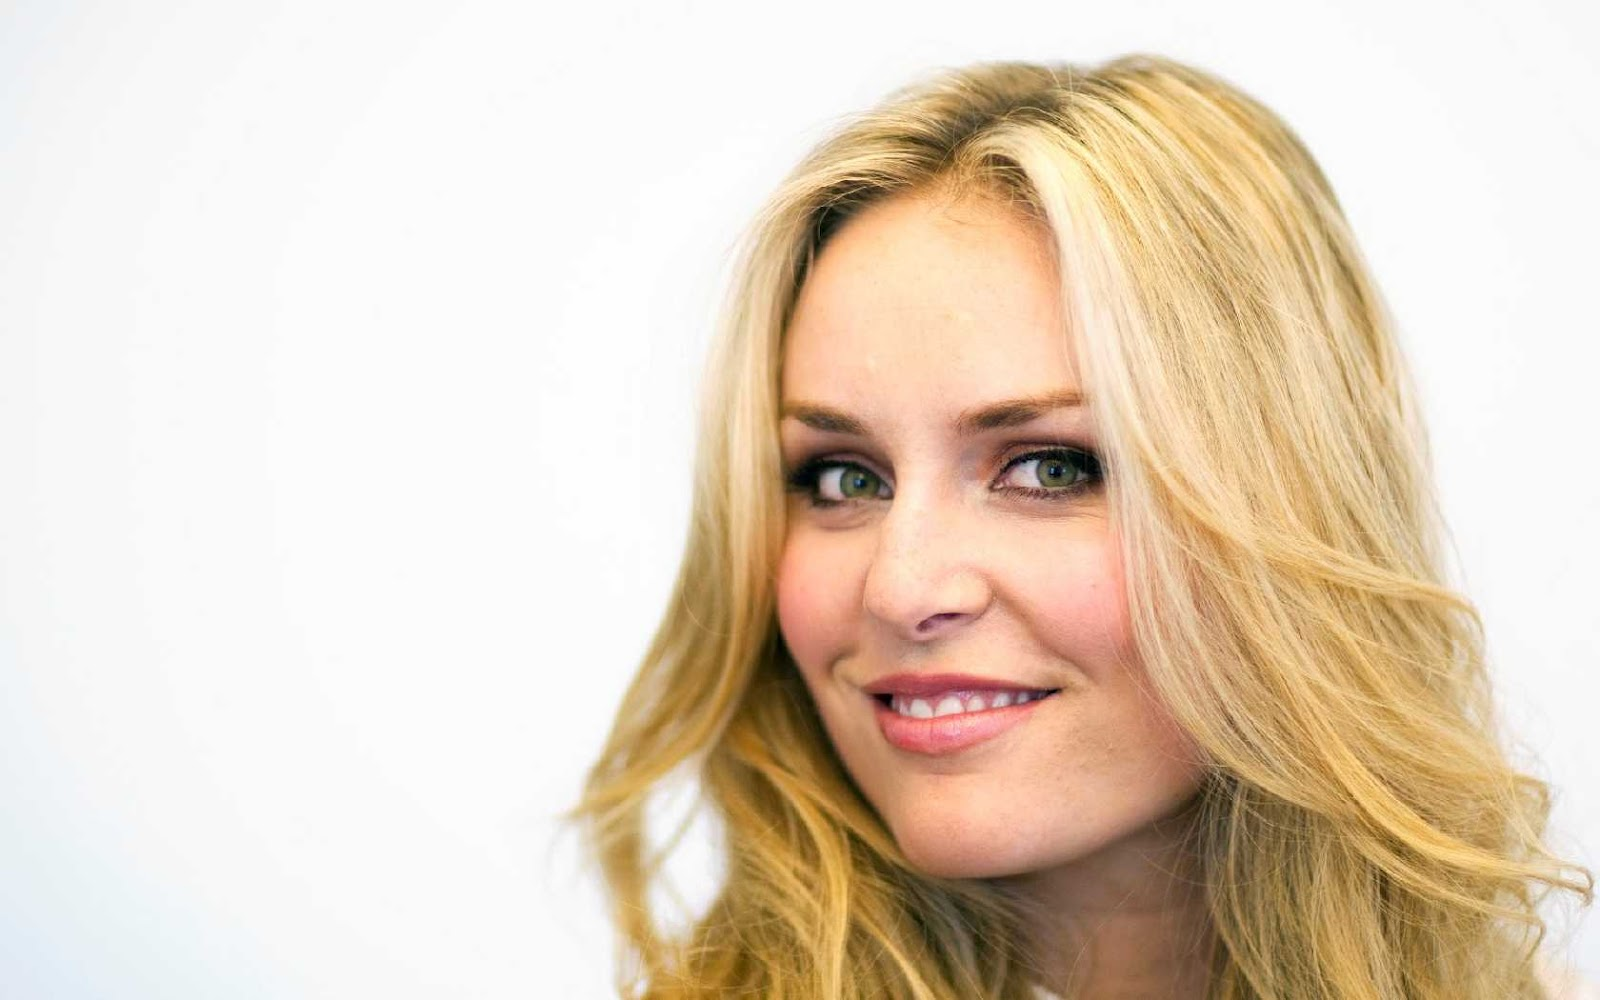 Lindsey Vonn: Pictures Of Beautiful Women: August 2012